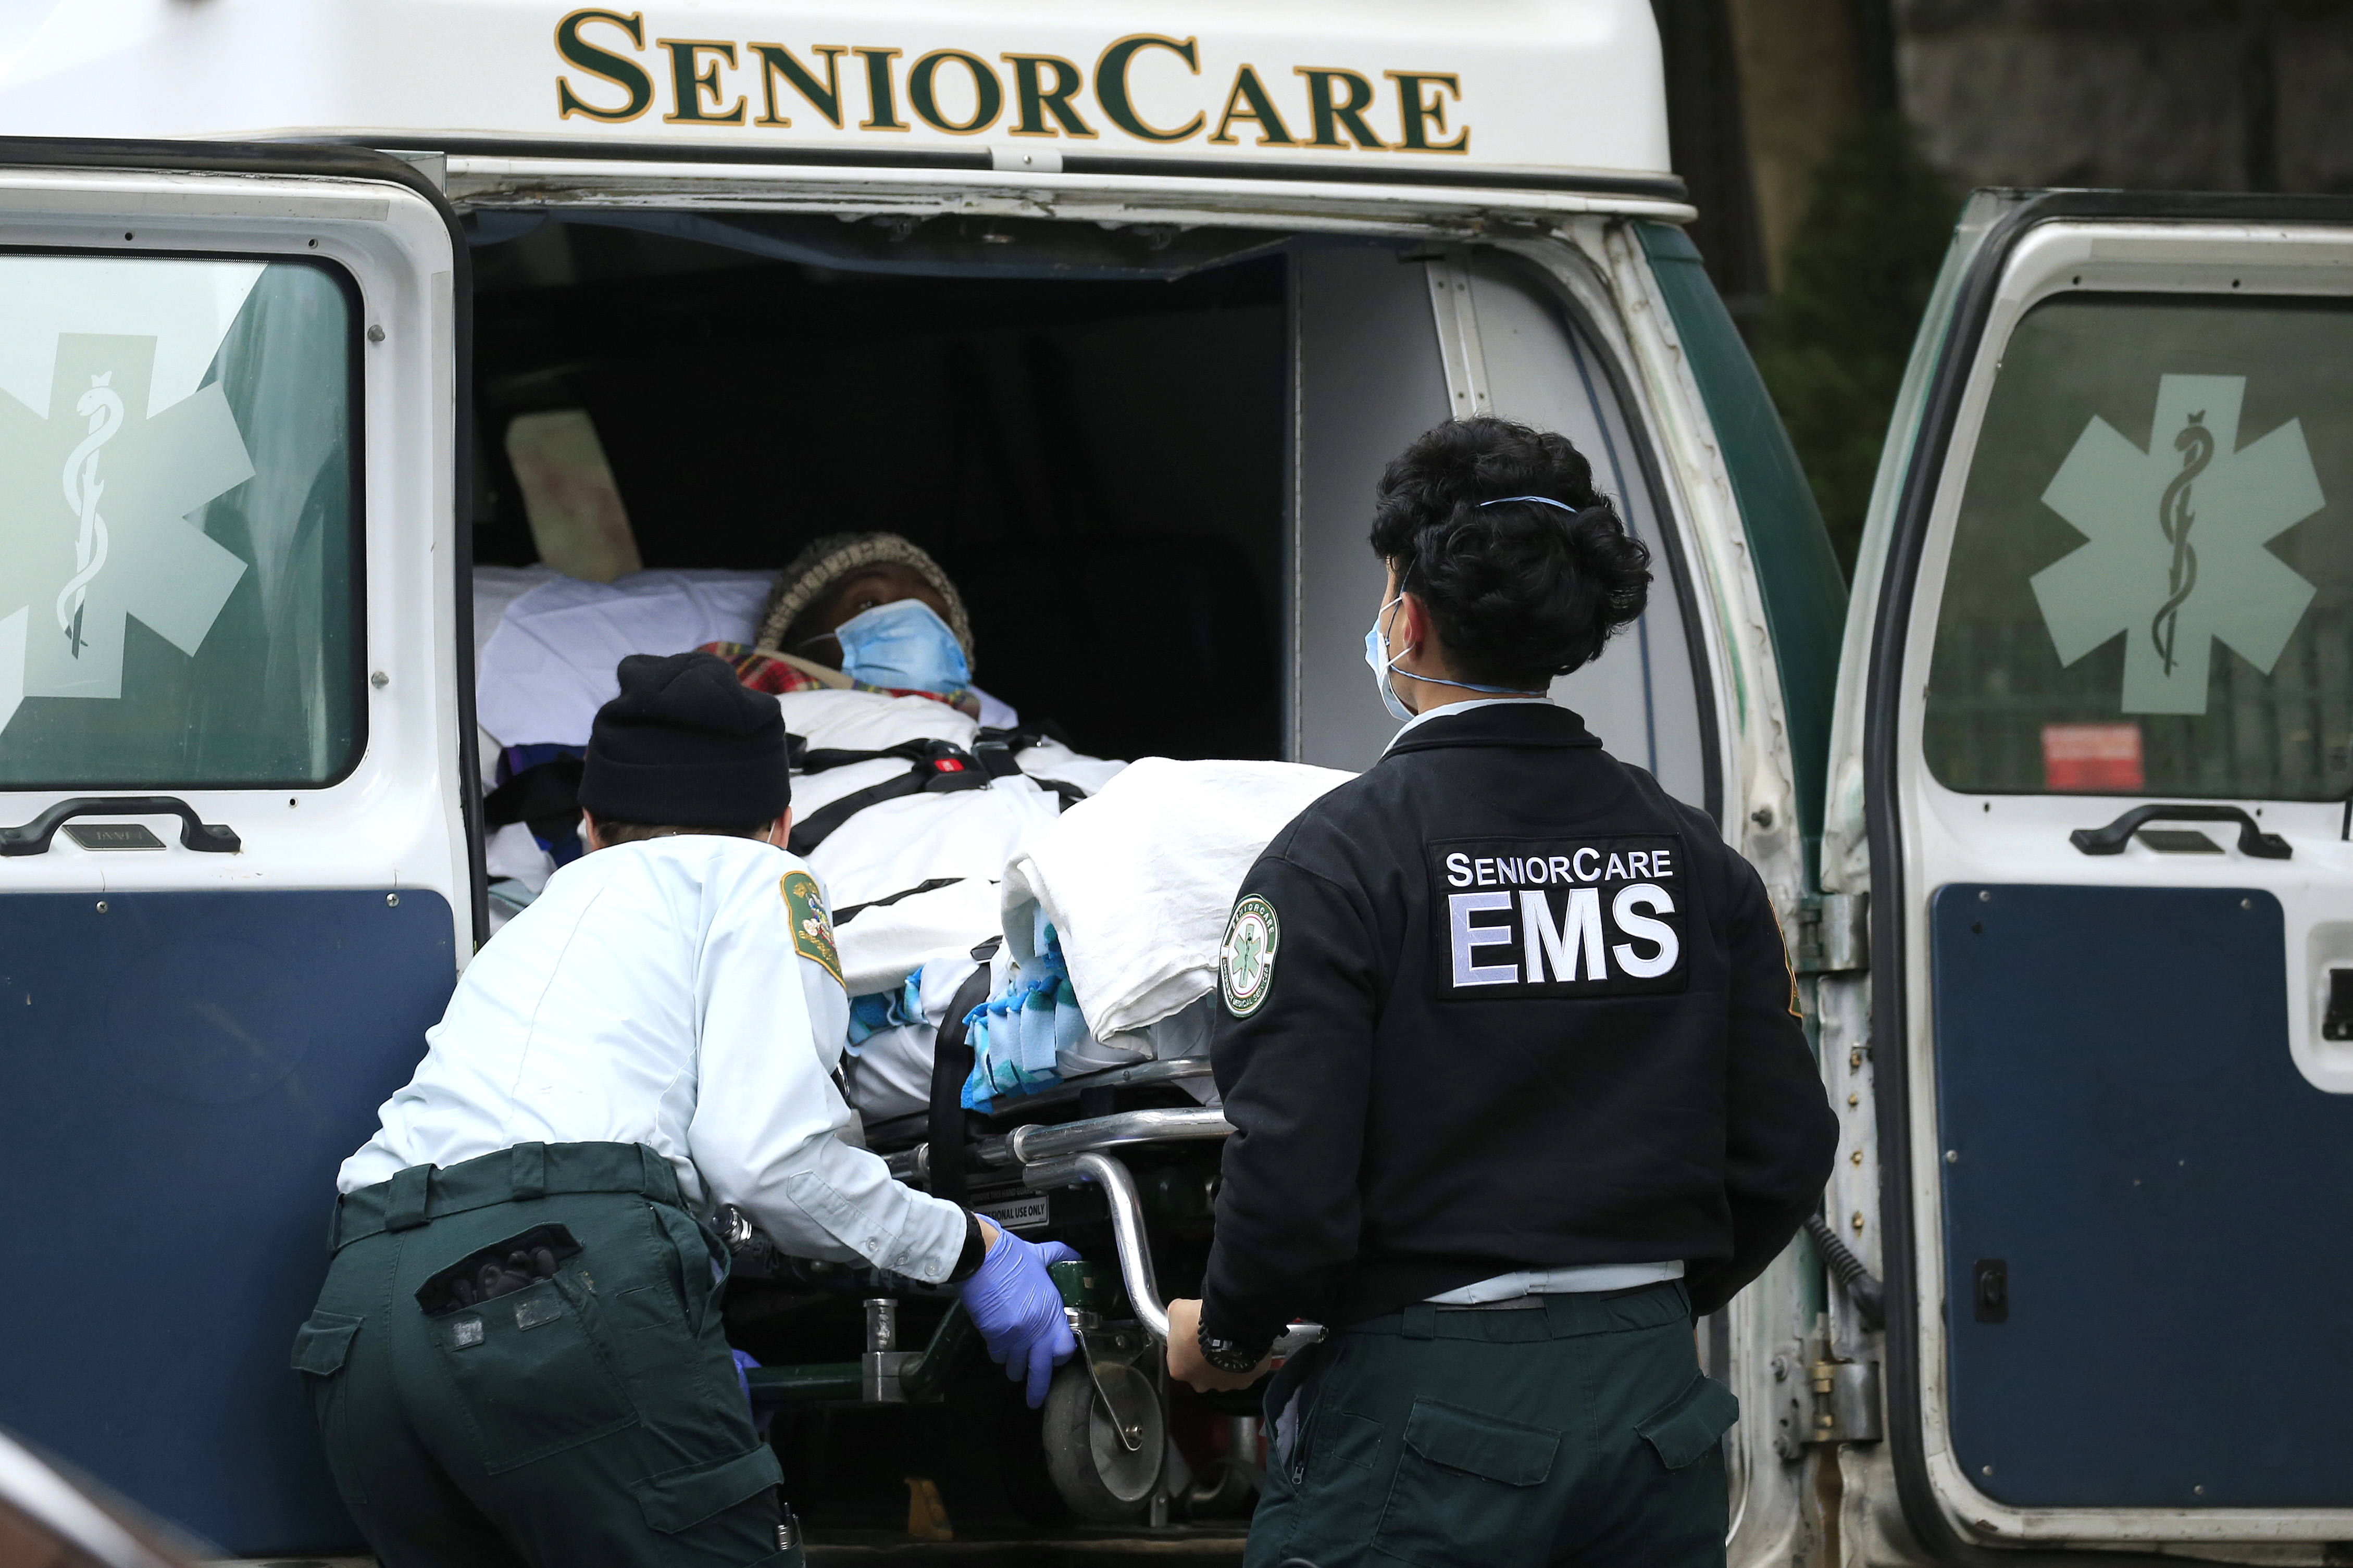 Emergency Medical Service workers unload a patient out of their ambulance at the Cobble Hill Health Center on April 18, 2020 in the Cobble Hill neighborhood of the Brooklyn borough of New York City. (Photo by Justin Heiman/Getty Images)